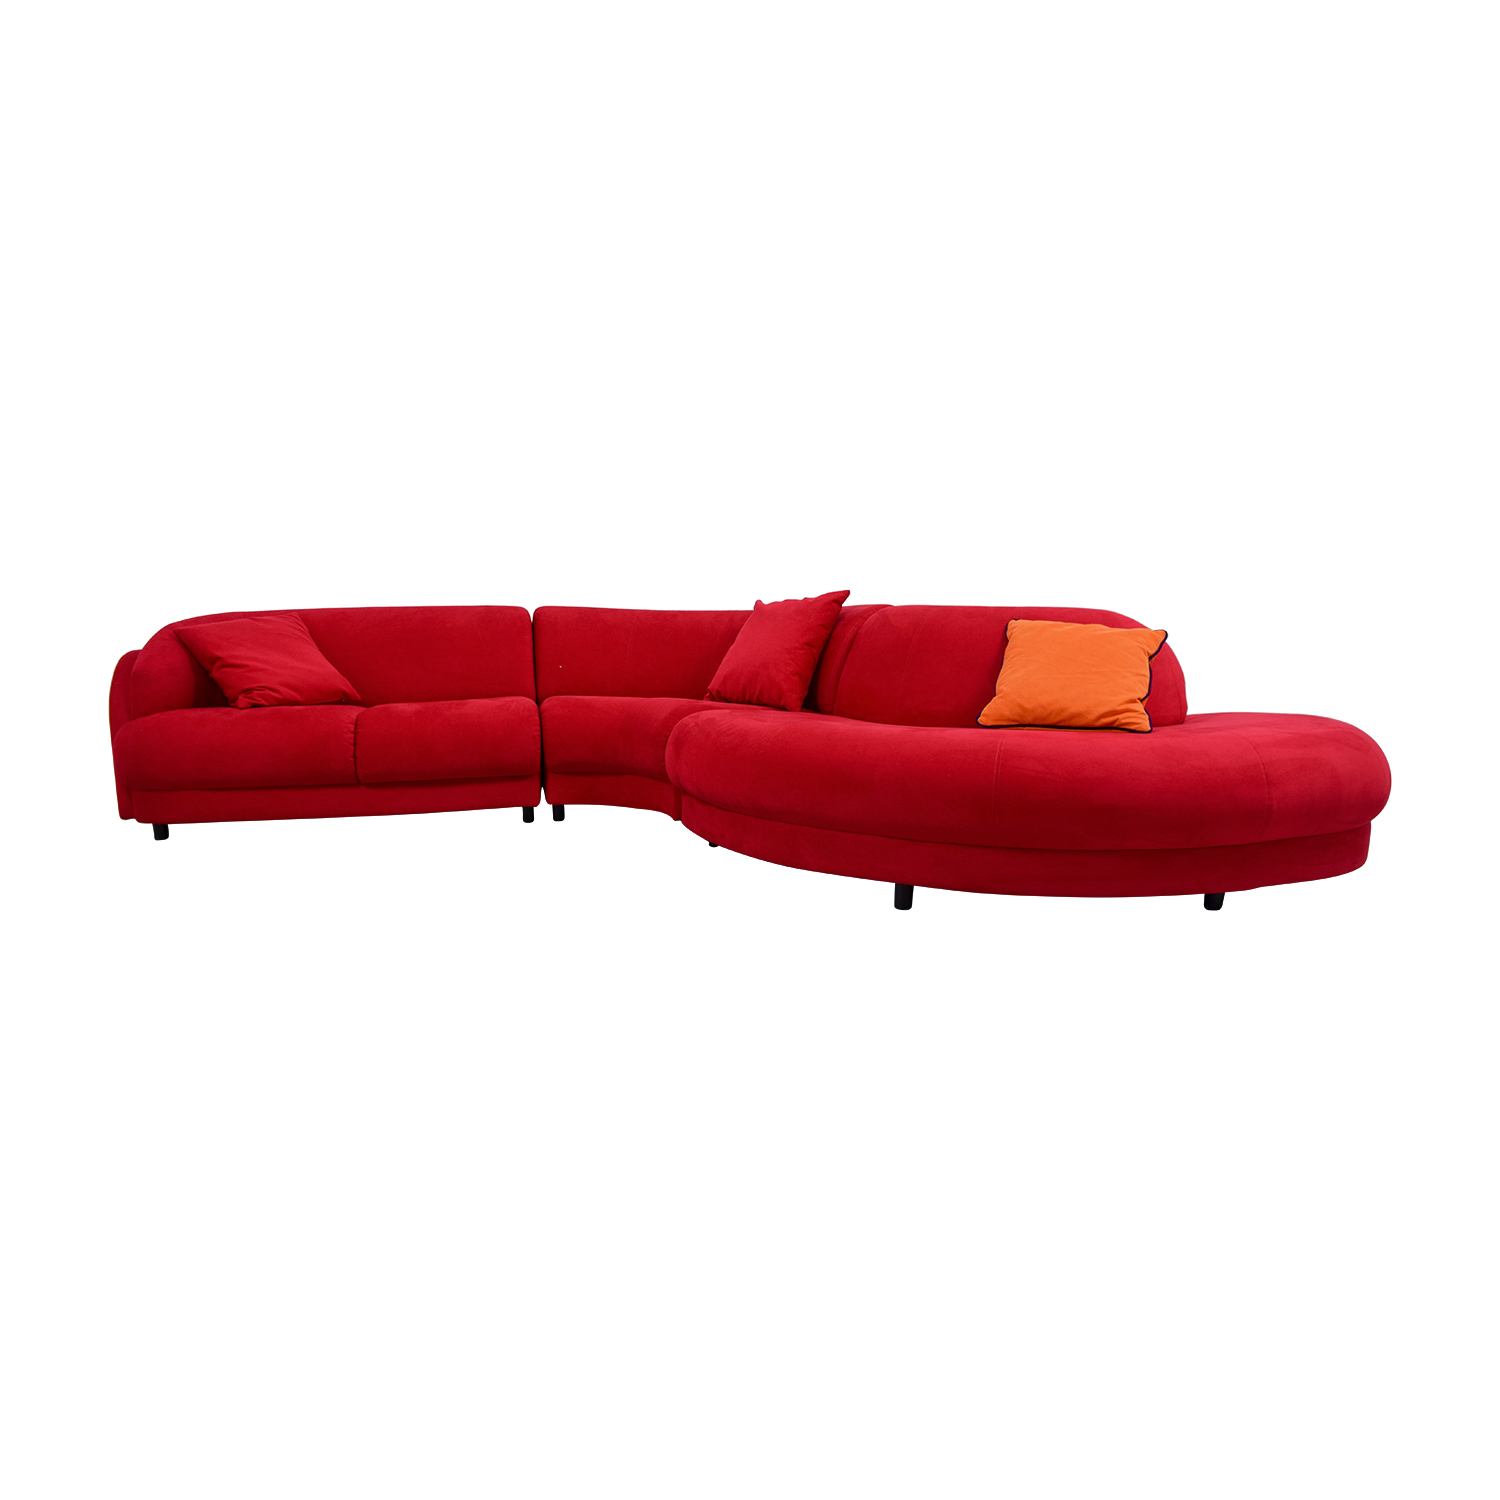 Bright Red Curved Sectional with Pillows nj